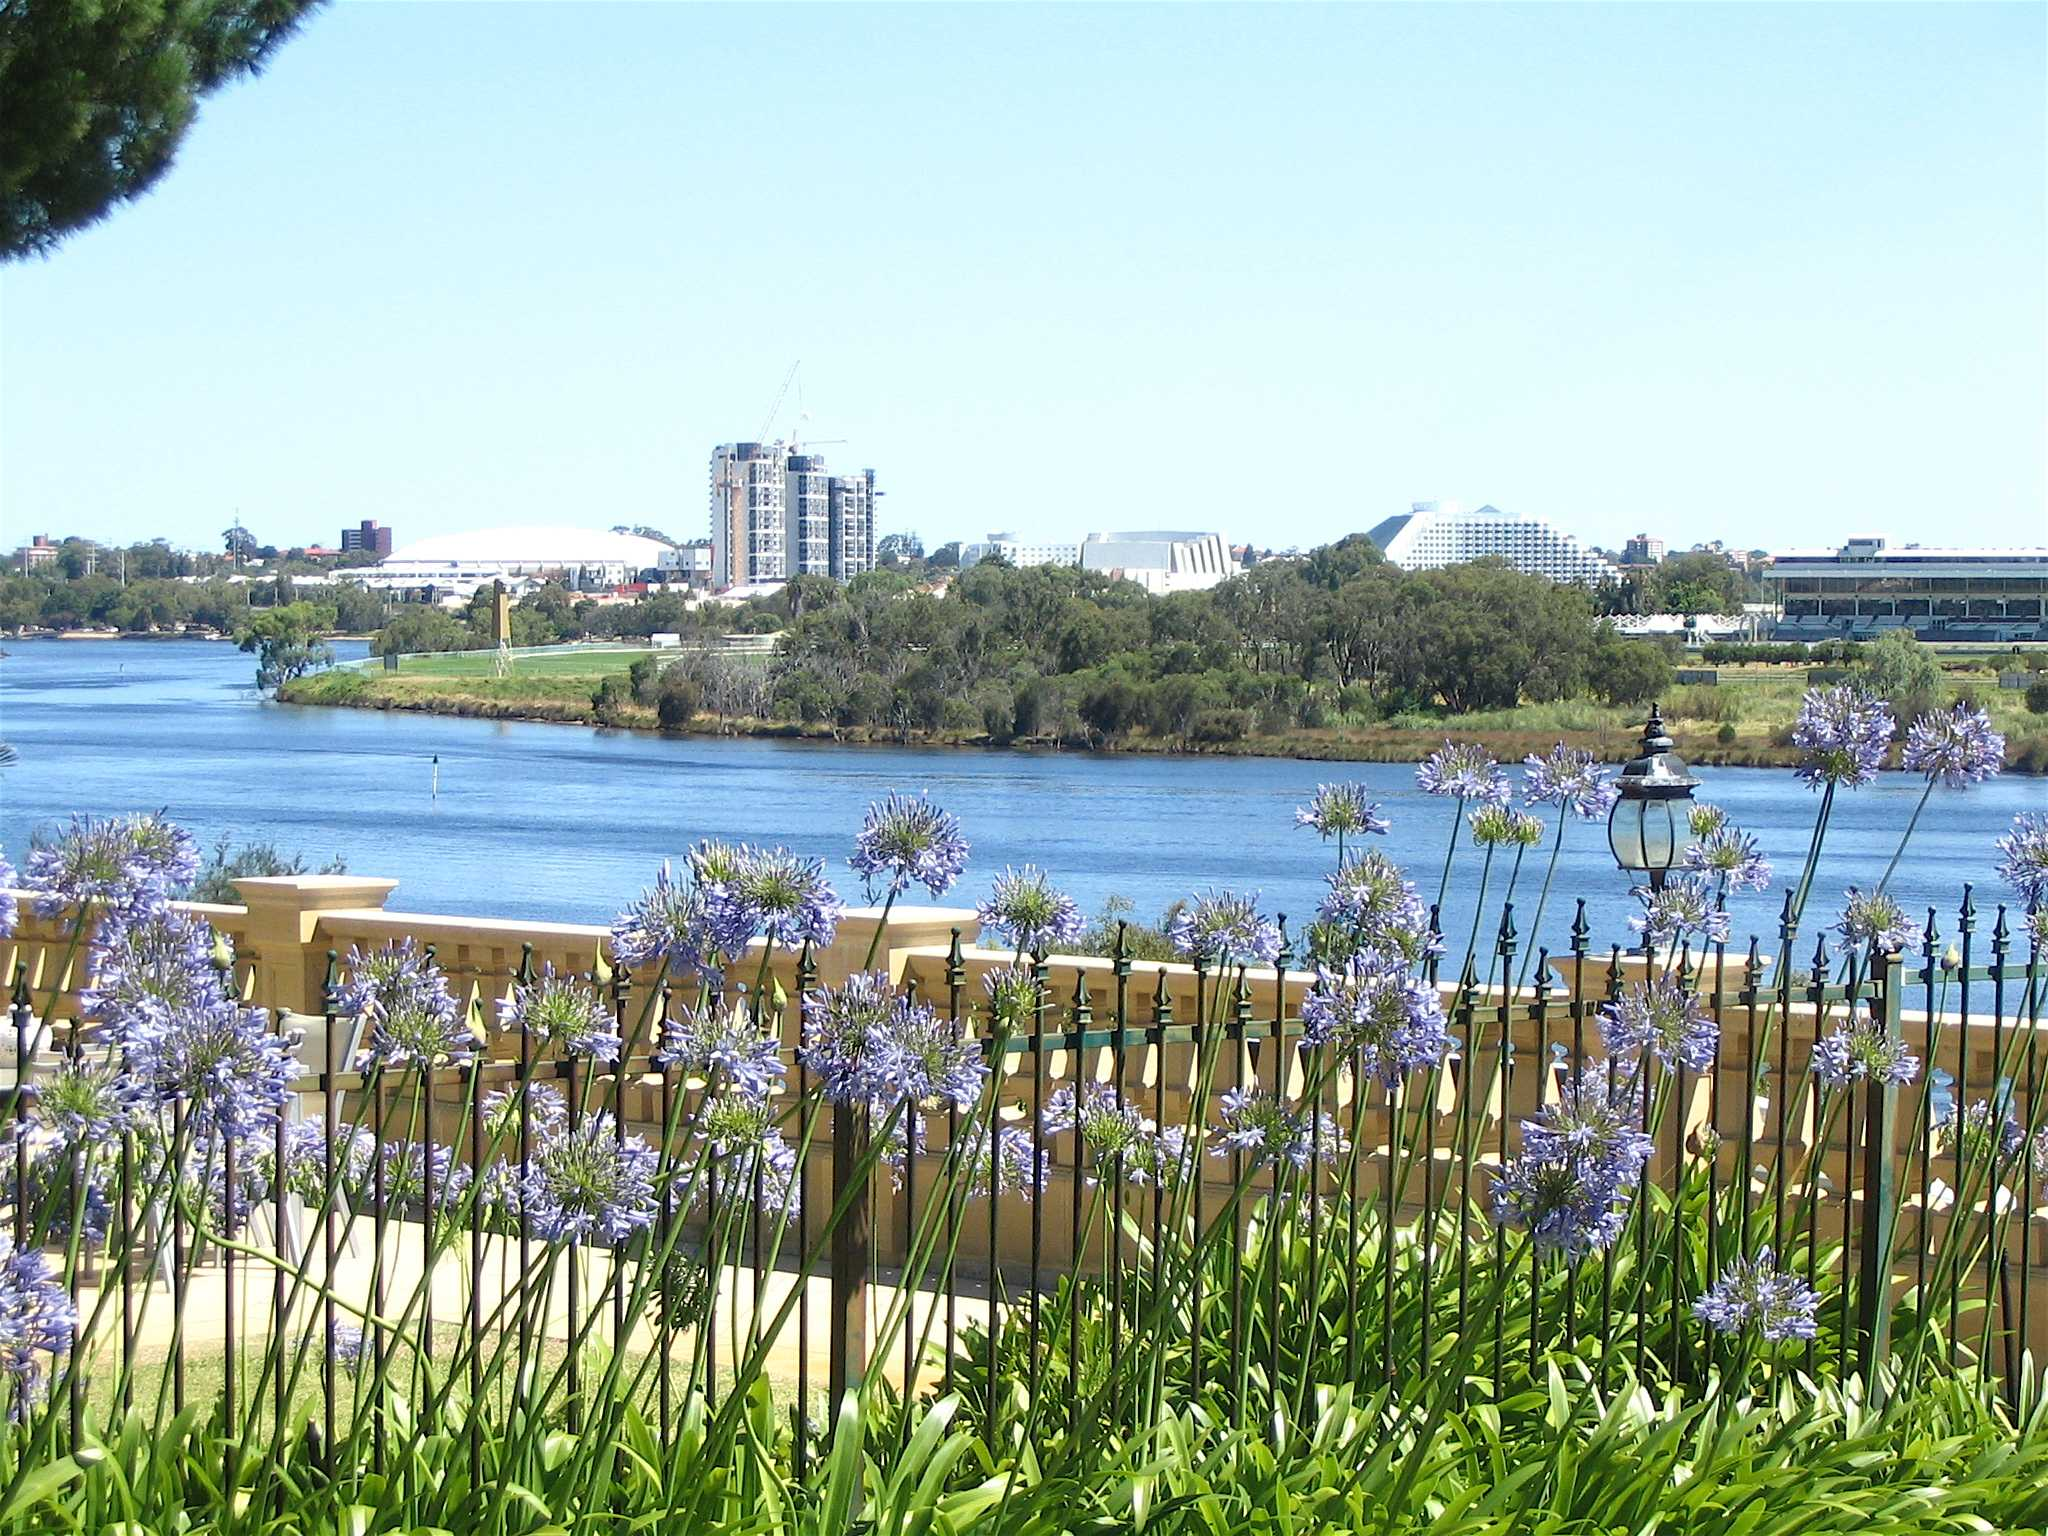 The beautiful view of Burswood